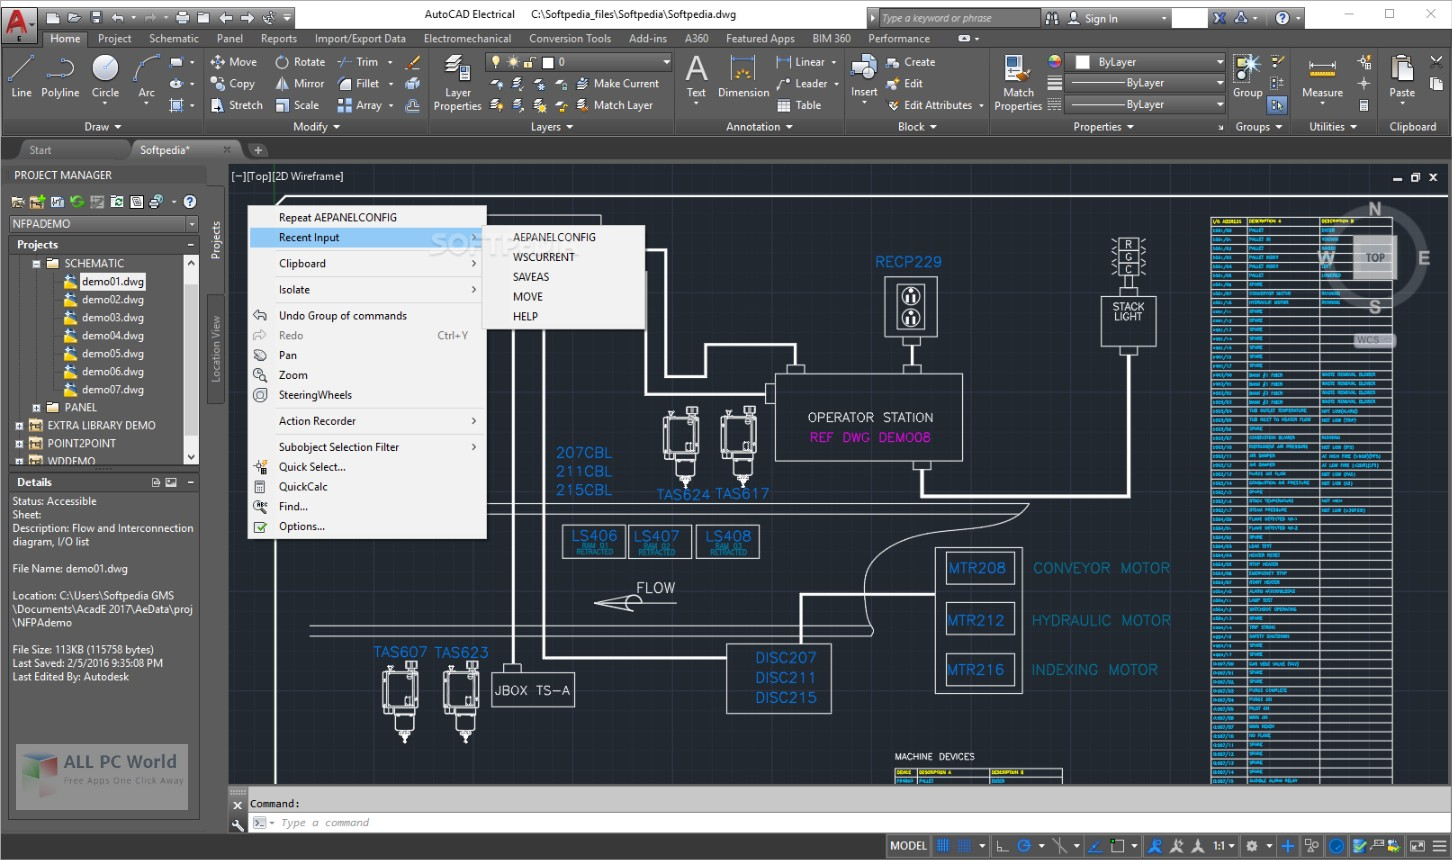 AutoCAD Electrical 2019 Free Download